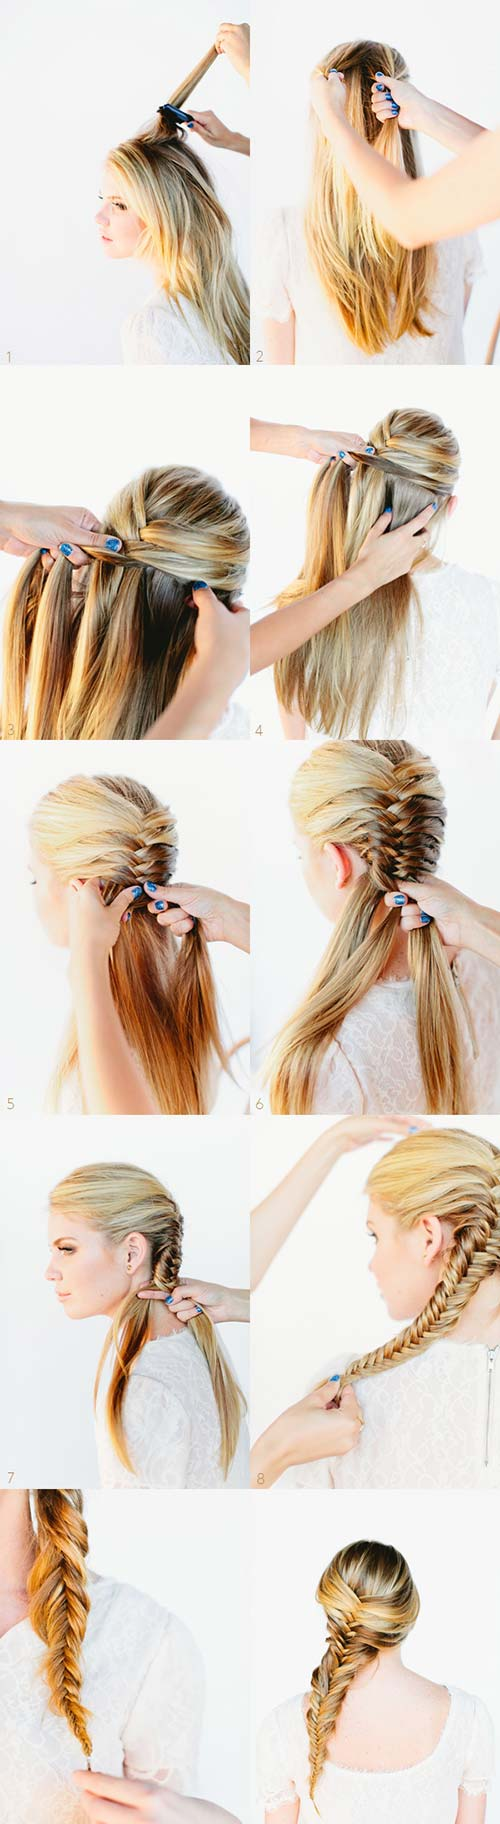 11 Unique Fishtail Braid Hairstyles With Tutorials And Ideas